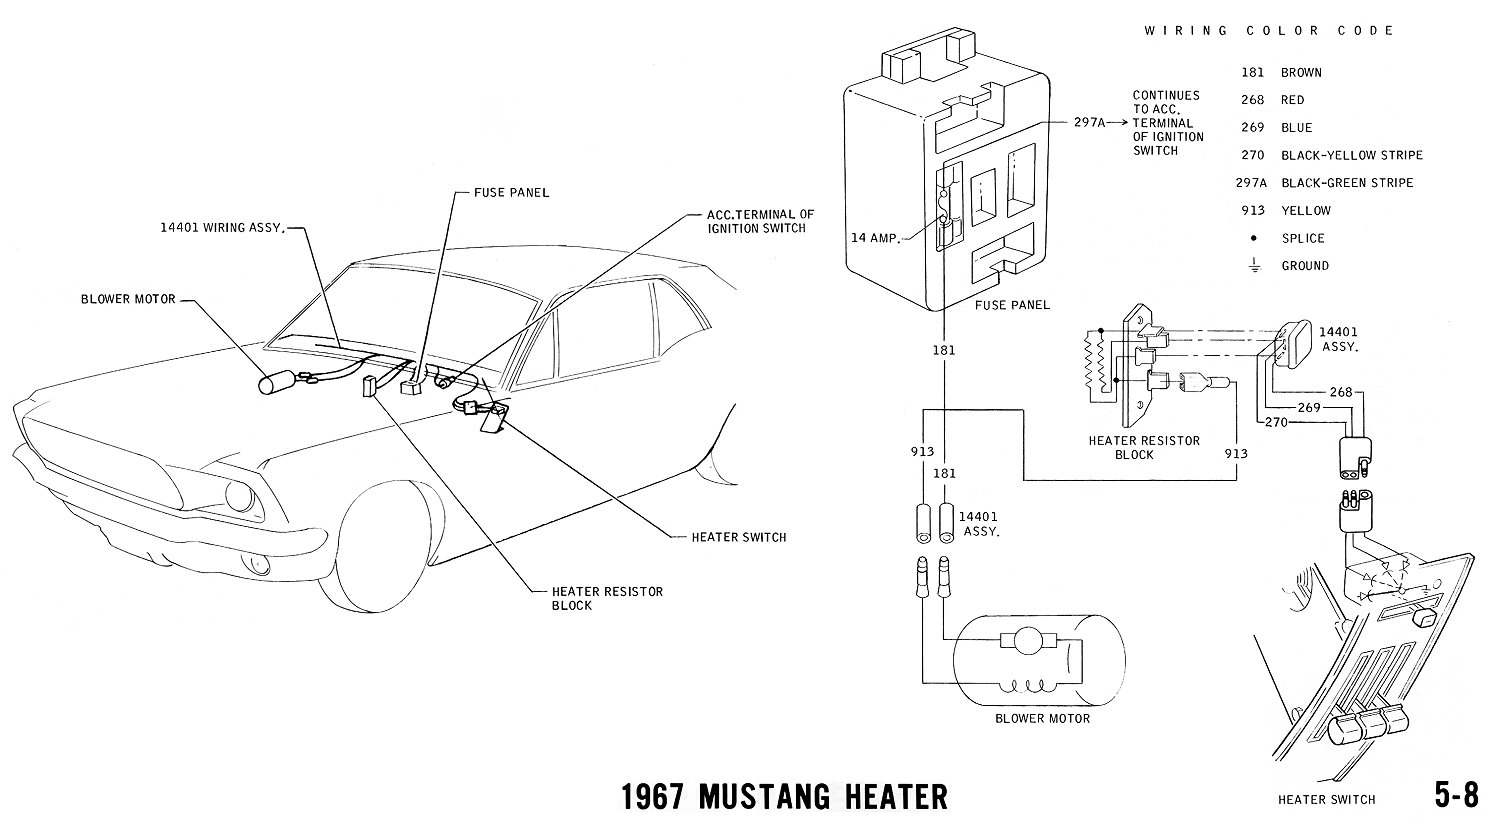 67heater 1967 mustang wiring and vacuum diagrams average joe restoration 1966 mustang fuse box diagram at bakdesigns.co